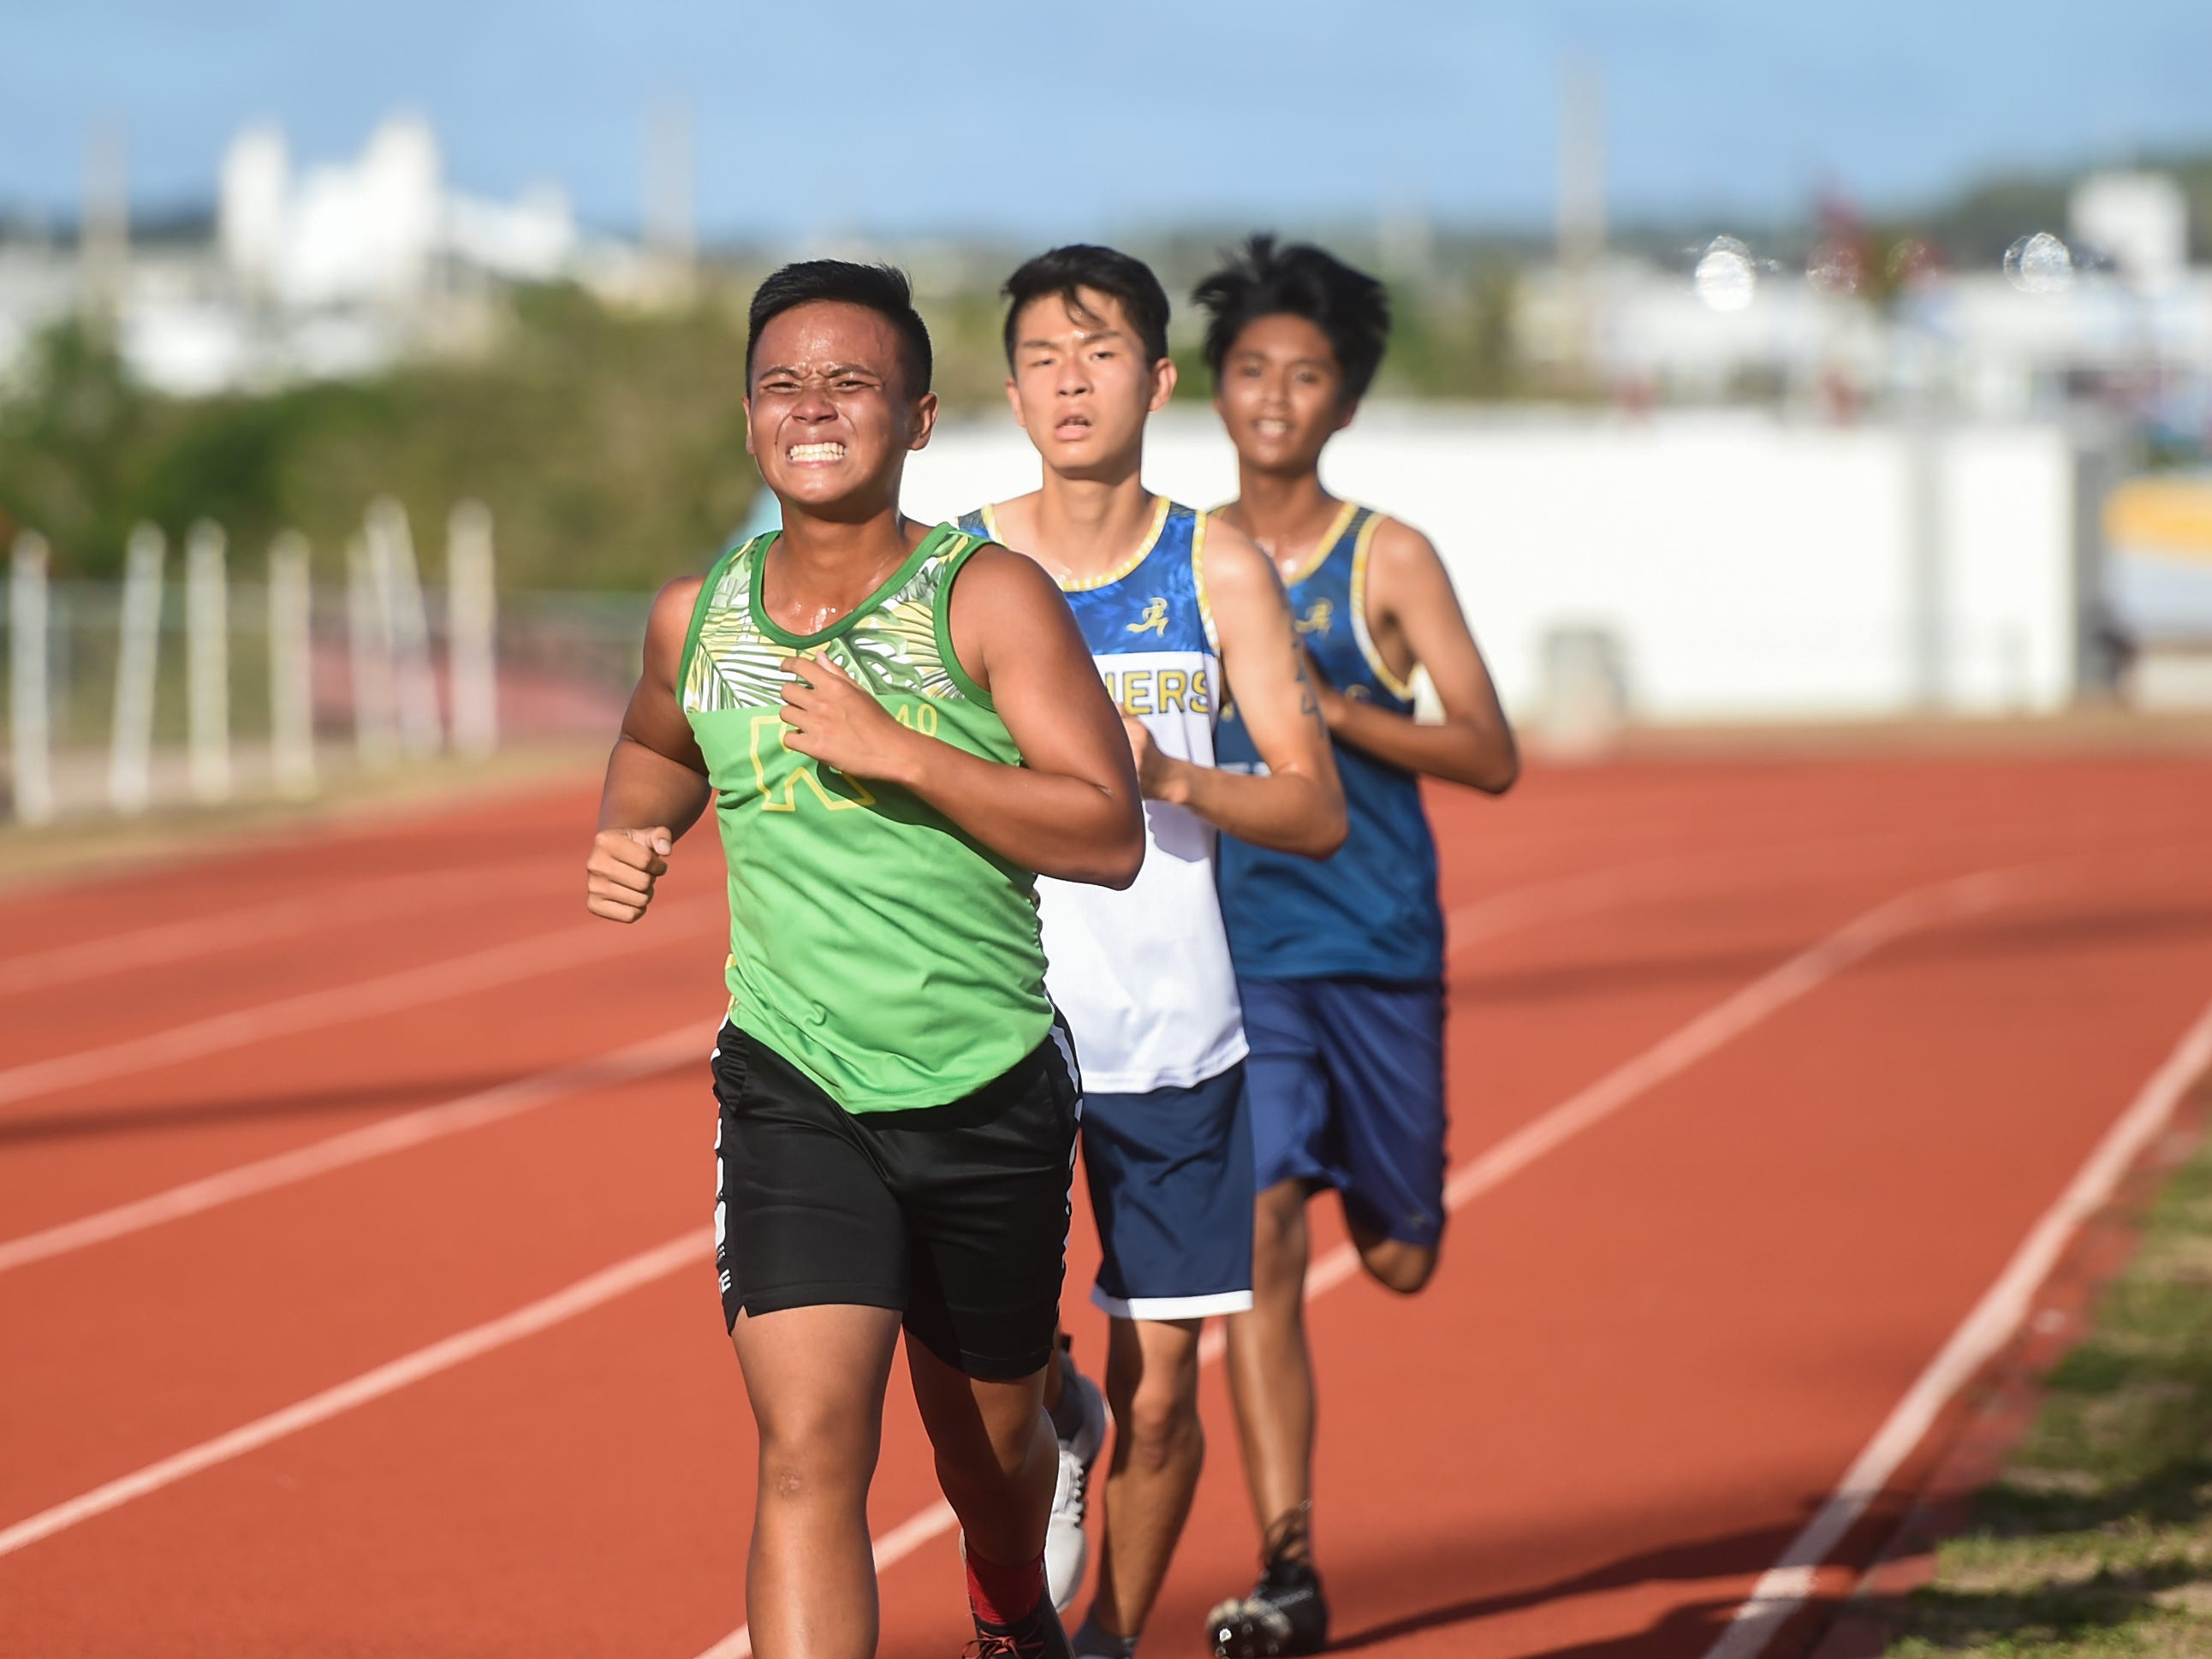 Athletes race in the Men's 3000 Meter Varsity event during a IIAAG Track and Field meet at John F. Kennedy Ramsey Field in Tamuning on May 10, 2019.